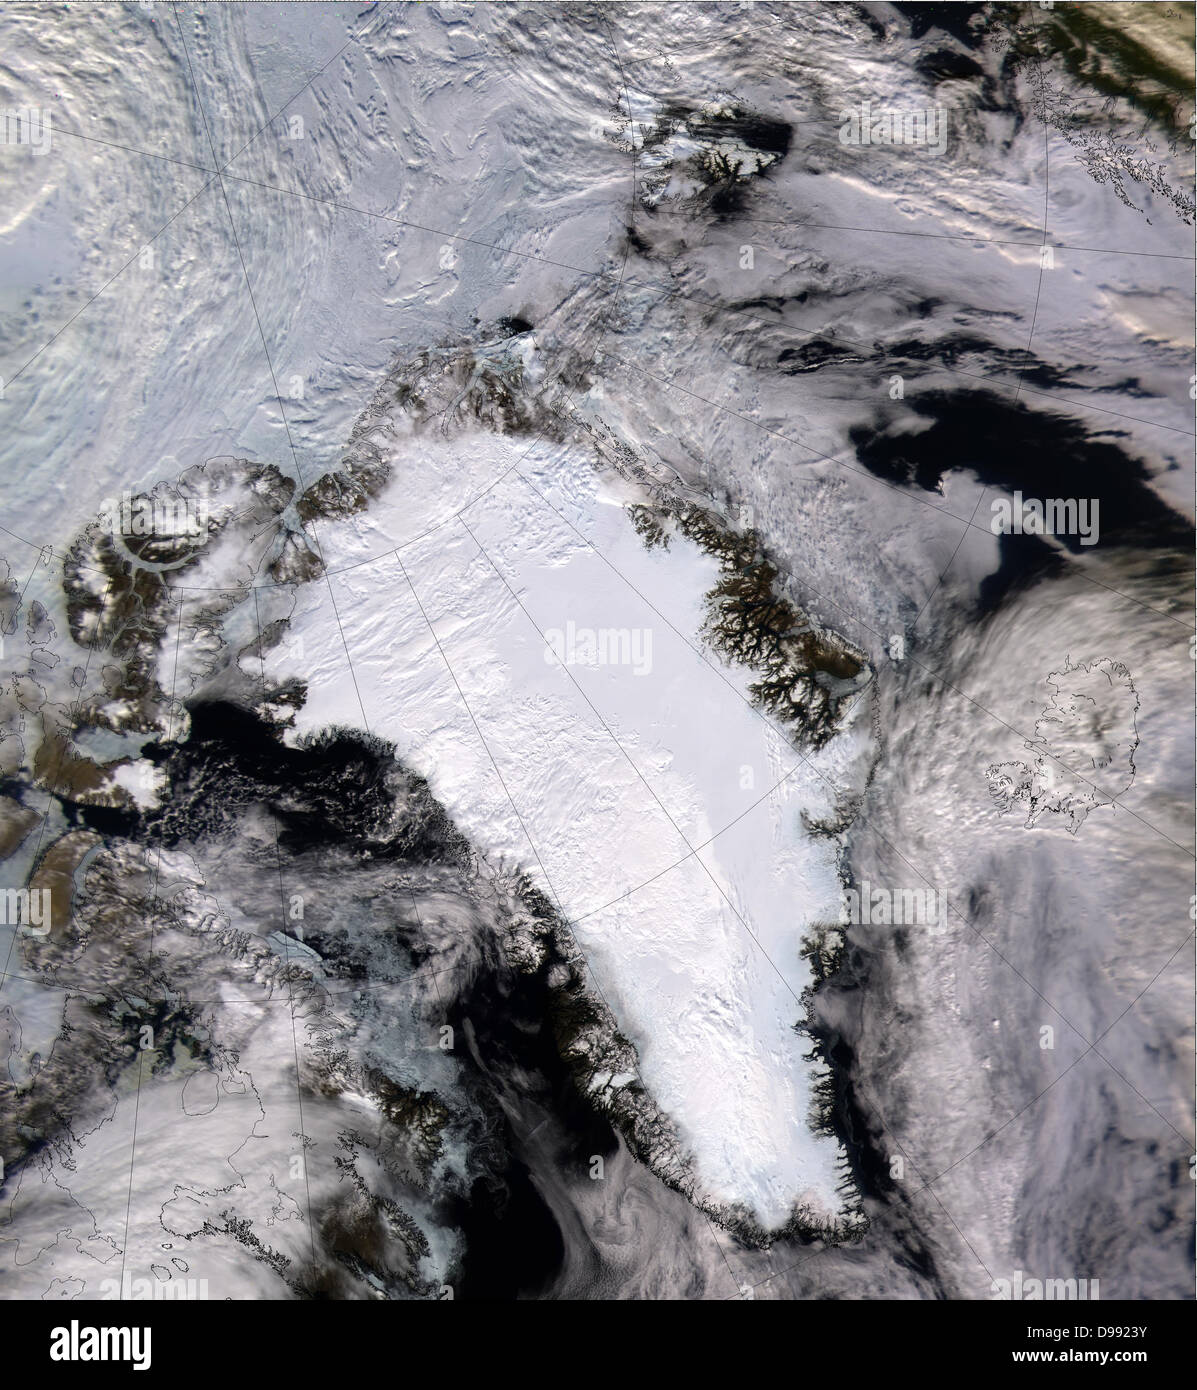 Satellite image of a snow and ice-covered Greenland in 2000. Credit NASA. - Stock Image